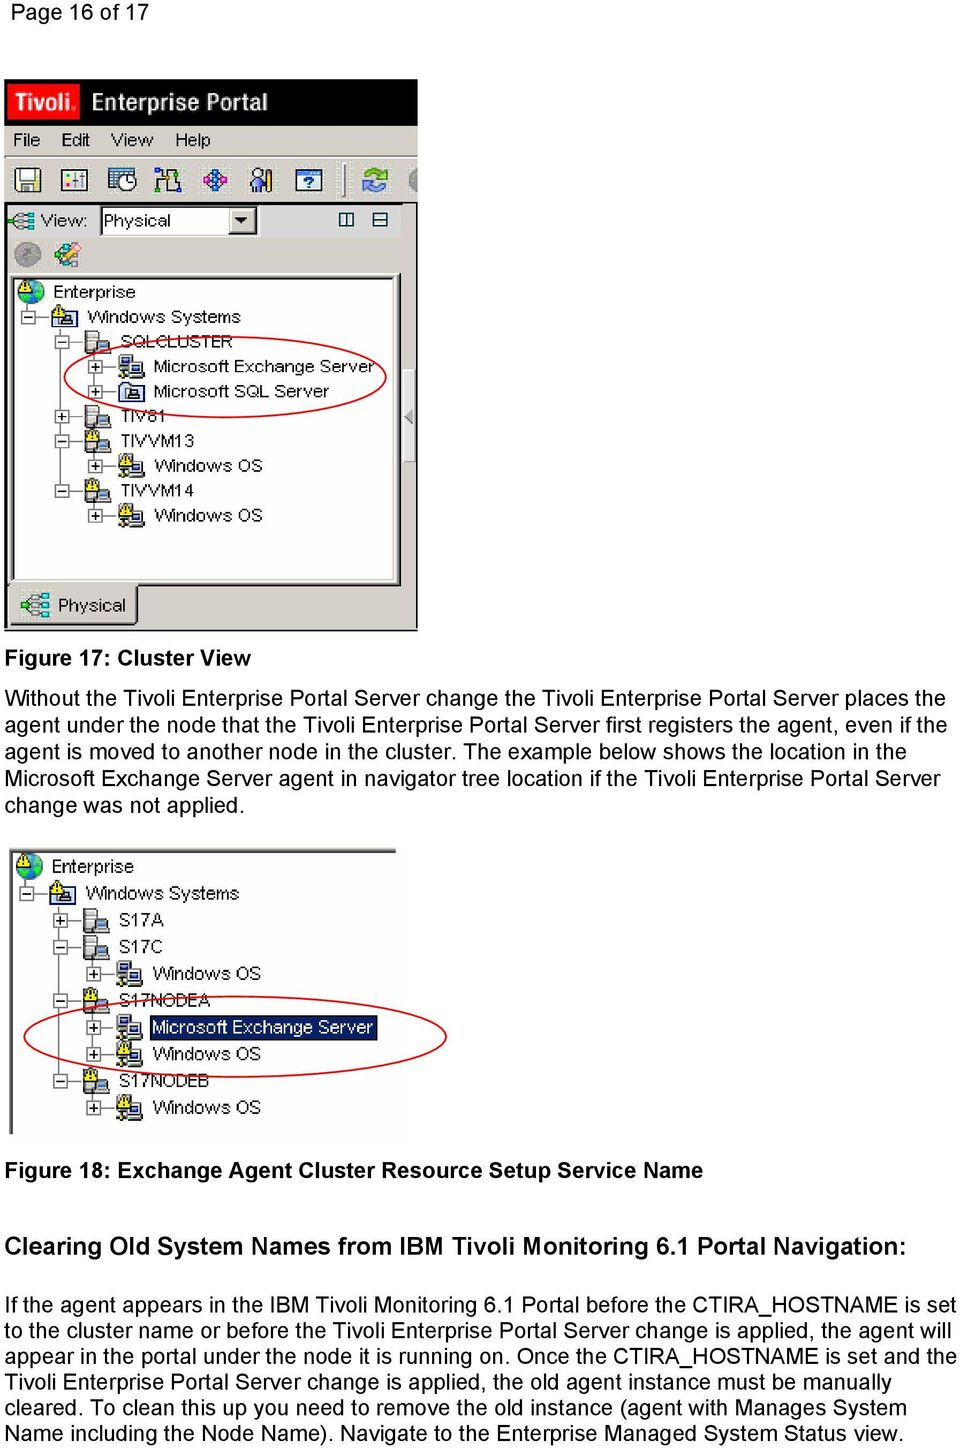 The example below shows the location in the Microsoft Exchange Server agent in navigator tree location if the Tivoli Enterprise Portal Server change was not applied.